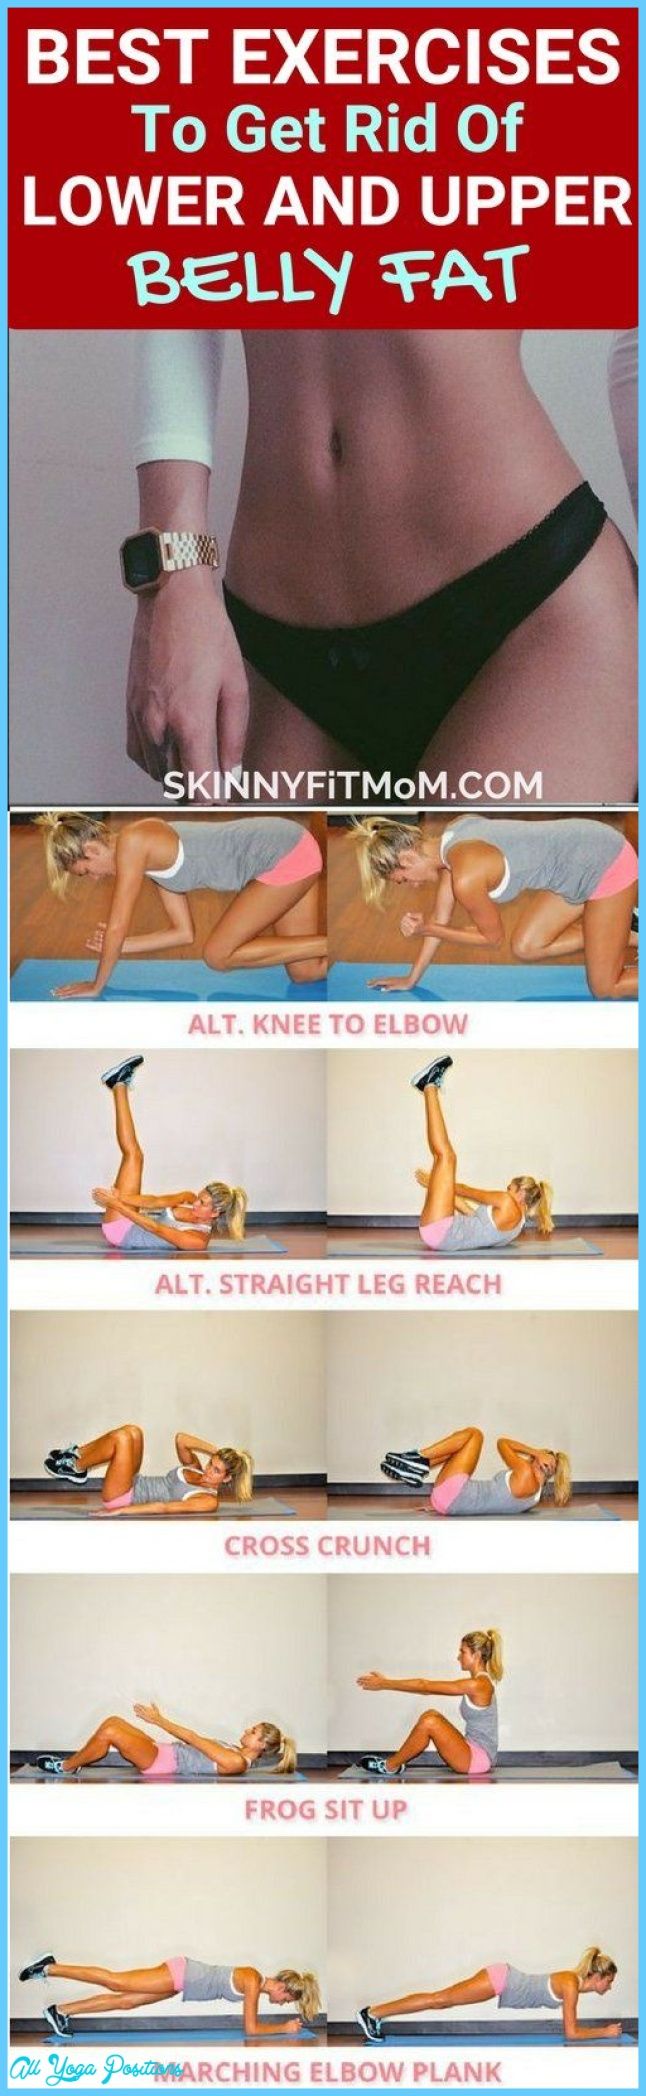 8 Proven Exercises To Burn Lower Belly Fat | Exercises